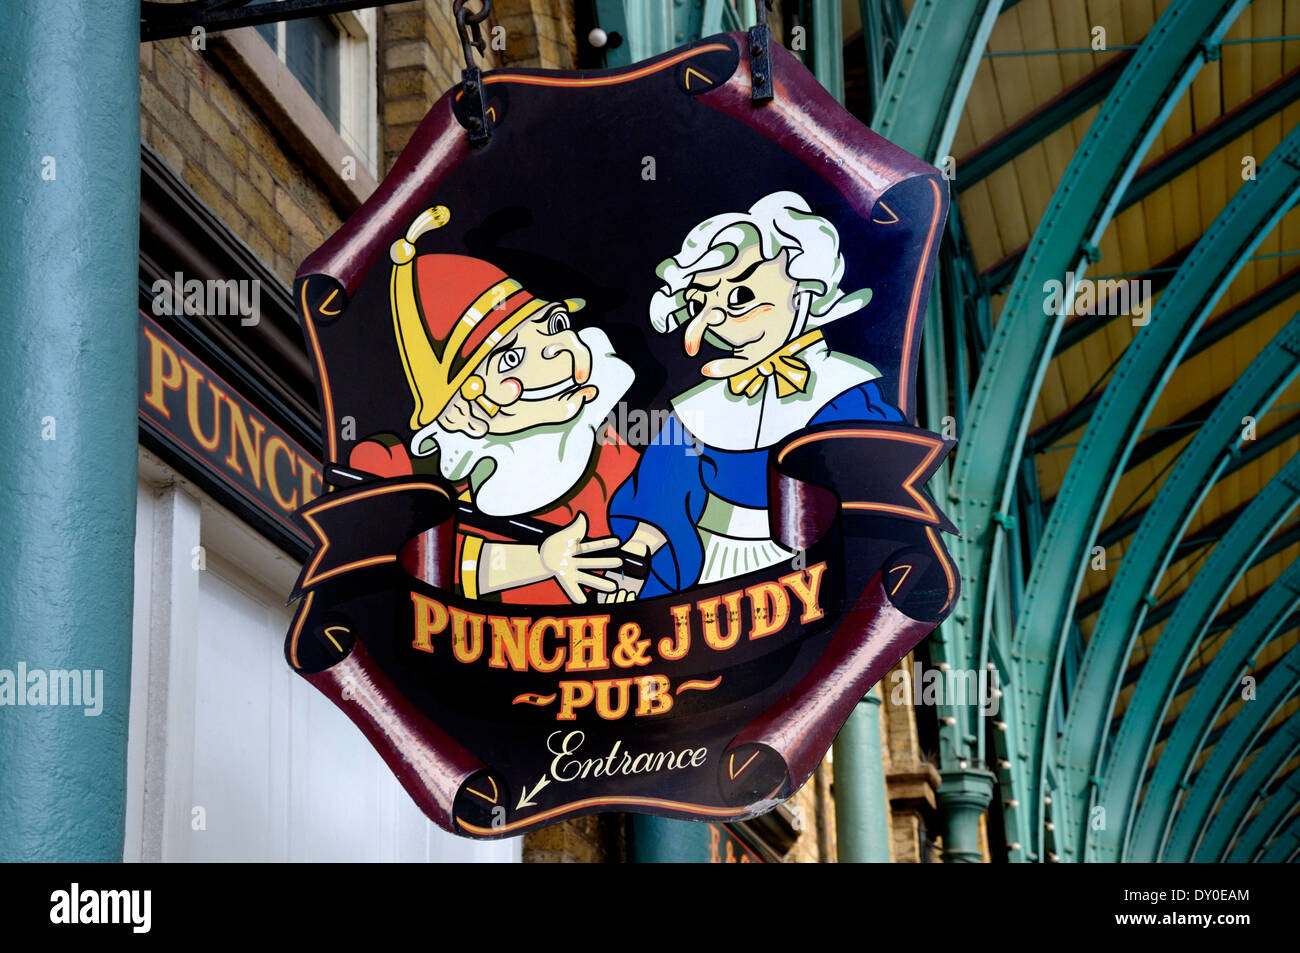 London, England, UK. Punch and Judy pub sign in Covent Garden - Stock Image